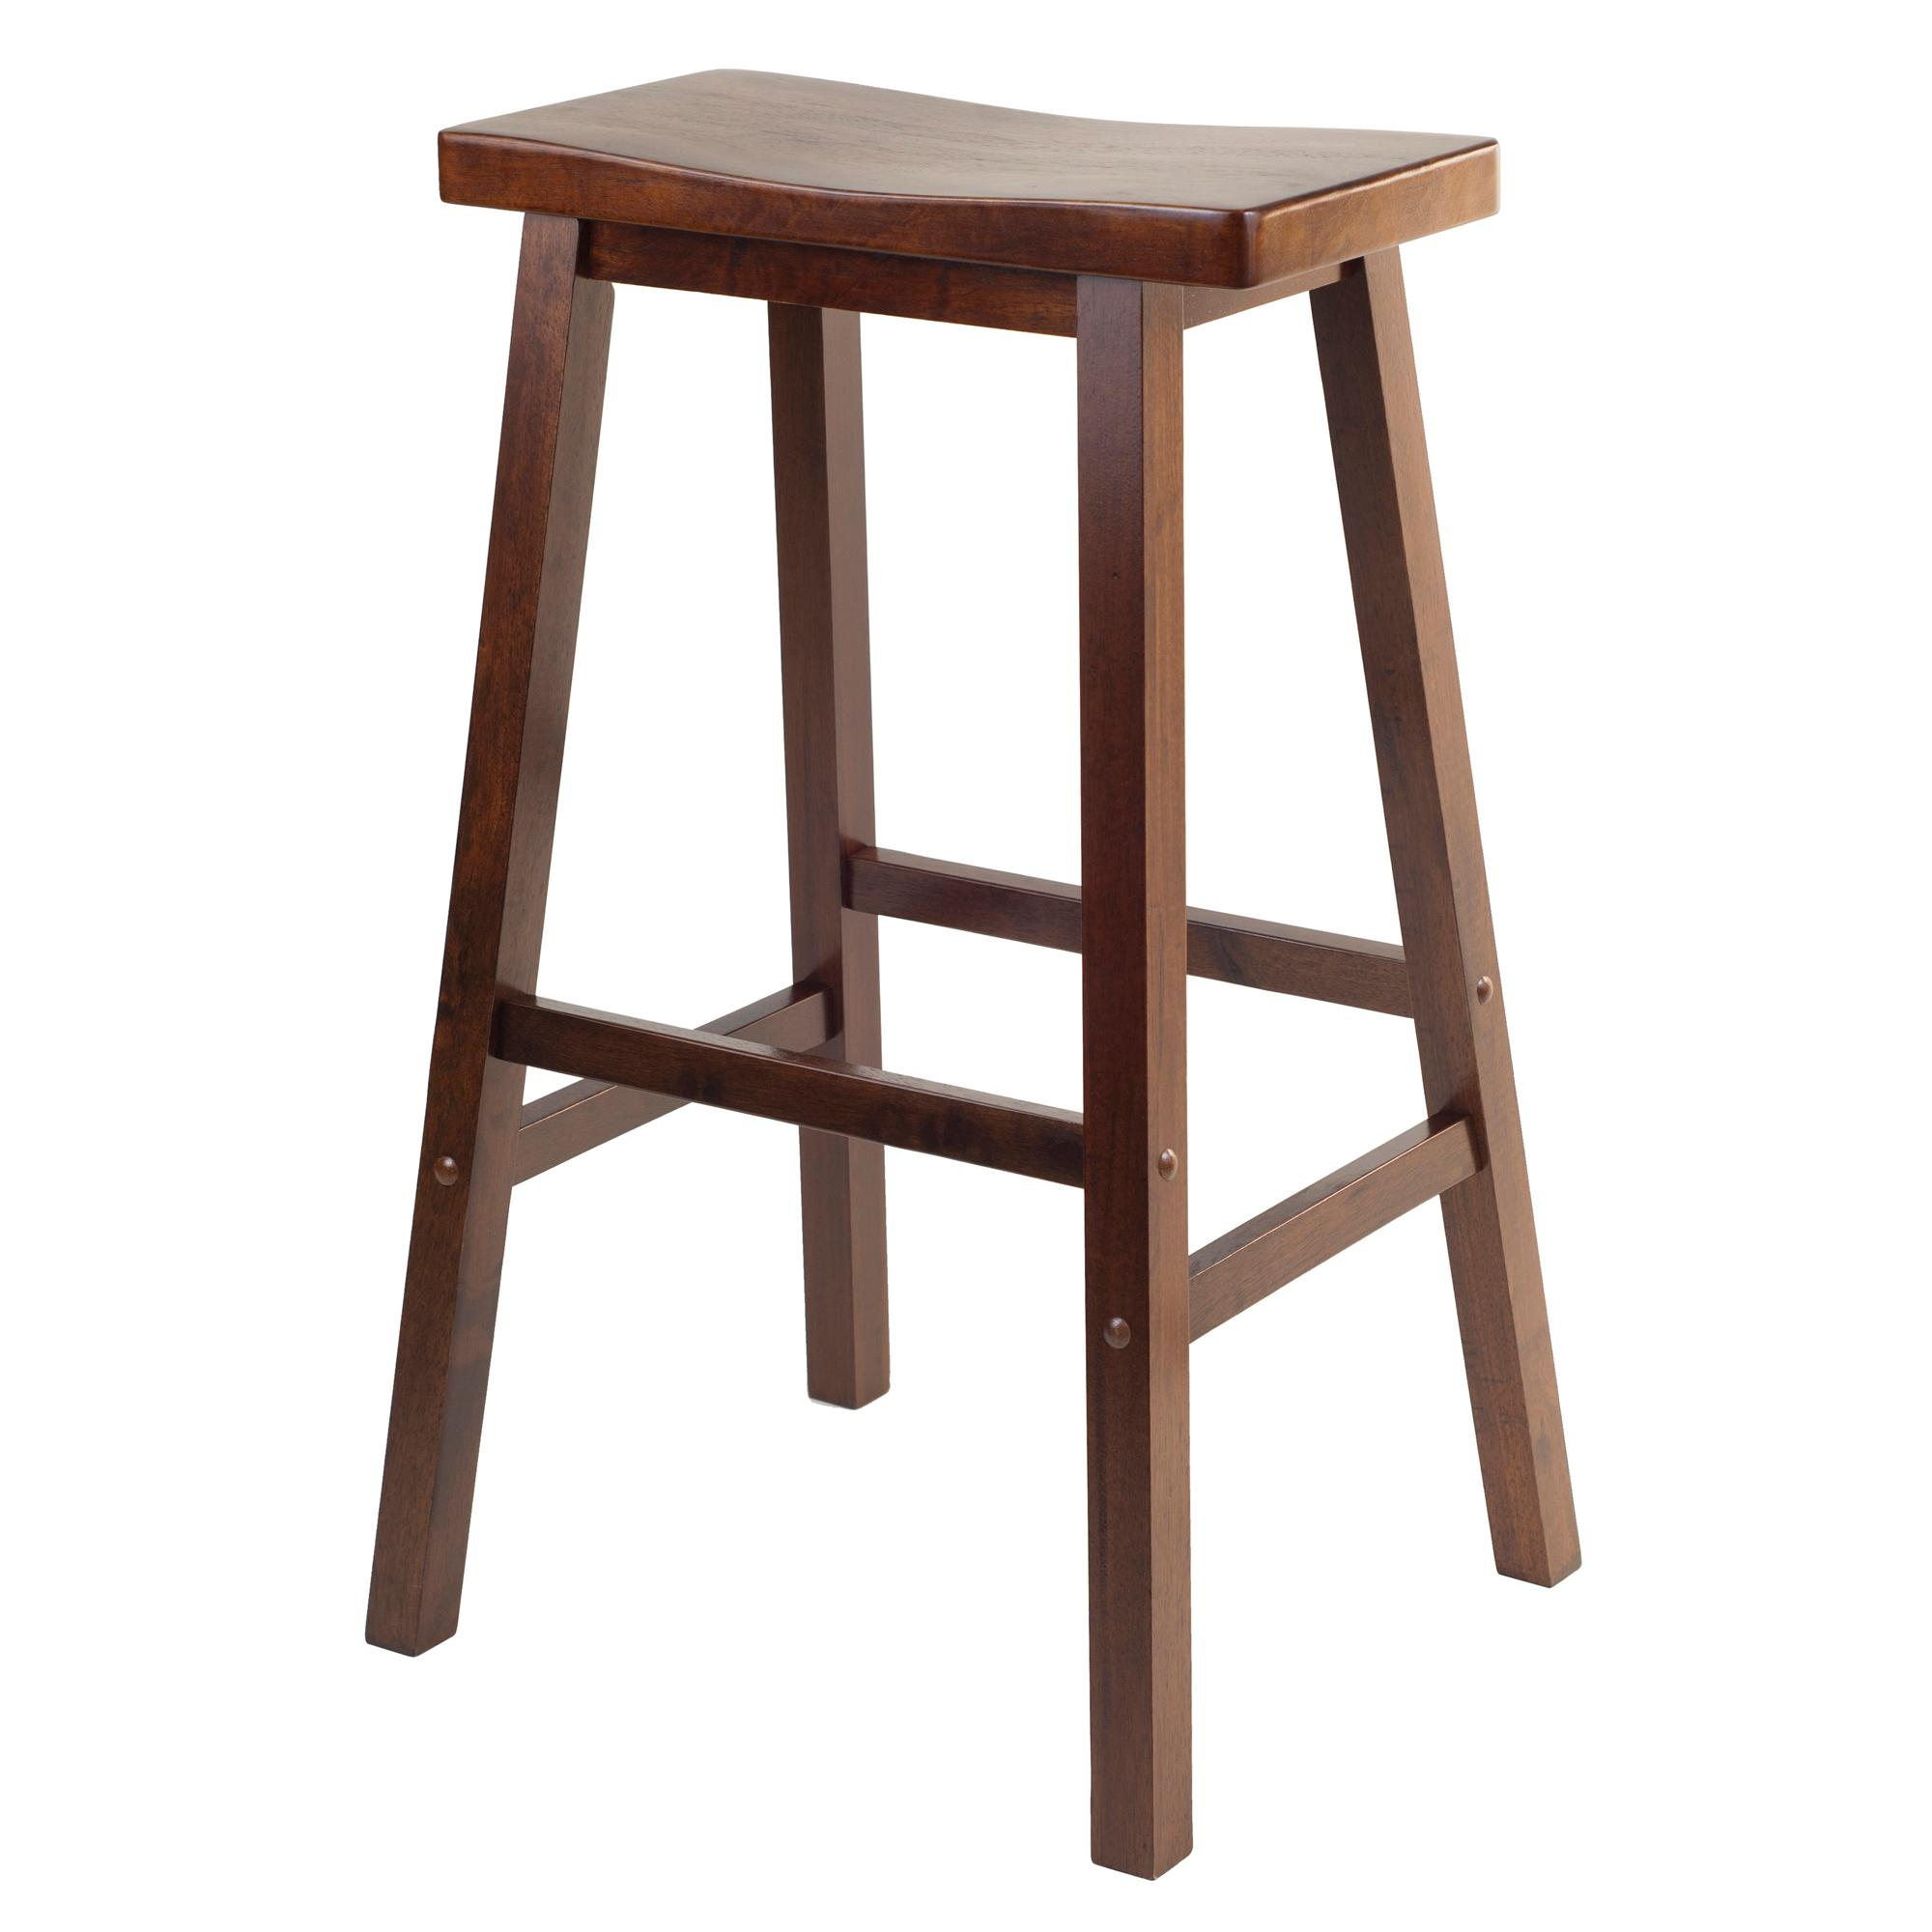 Amazon.com: Winsome Wood 29-Inch Saddle Seat Stool, Walnut